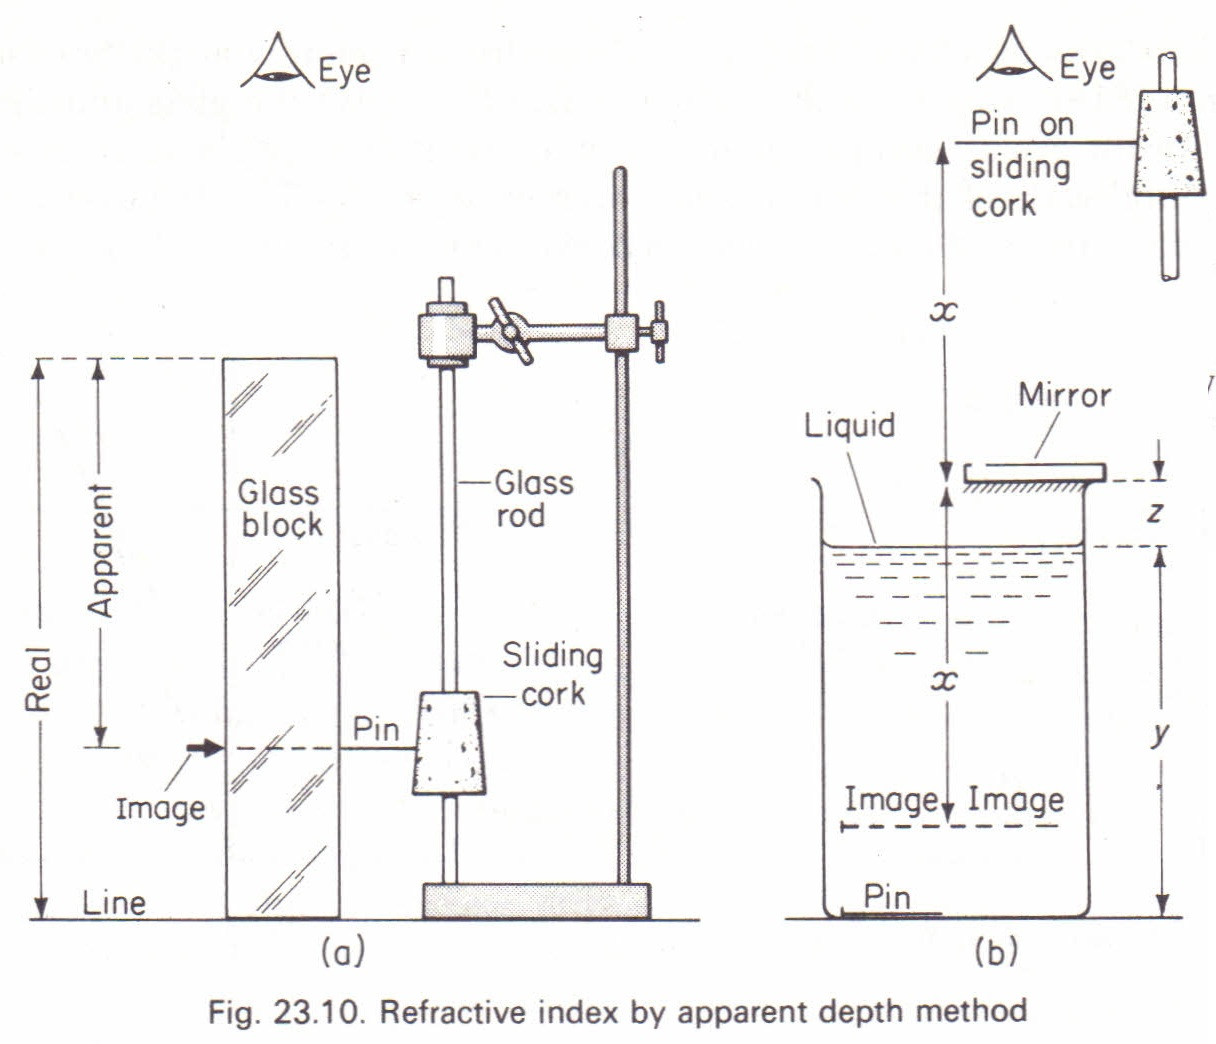 To Measure Refractive Index By The Real And Apparent Depth